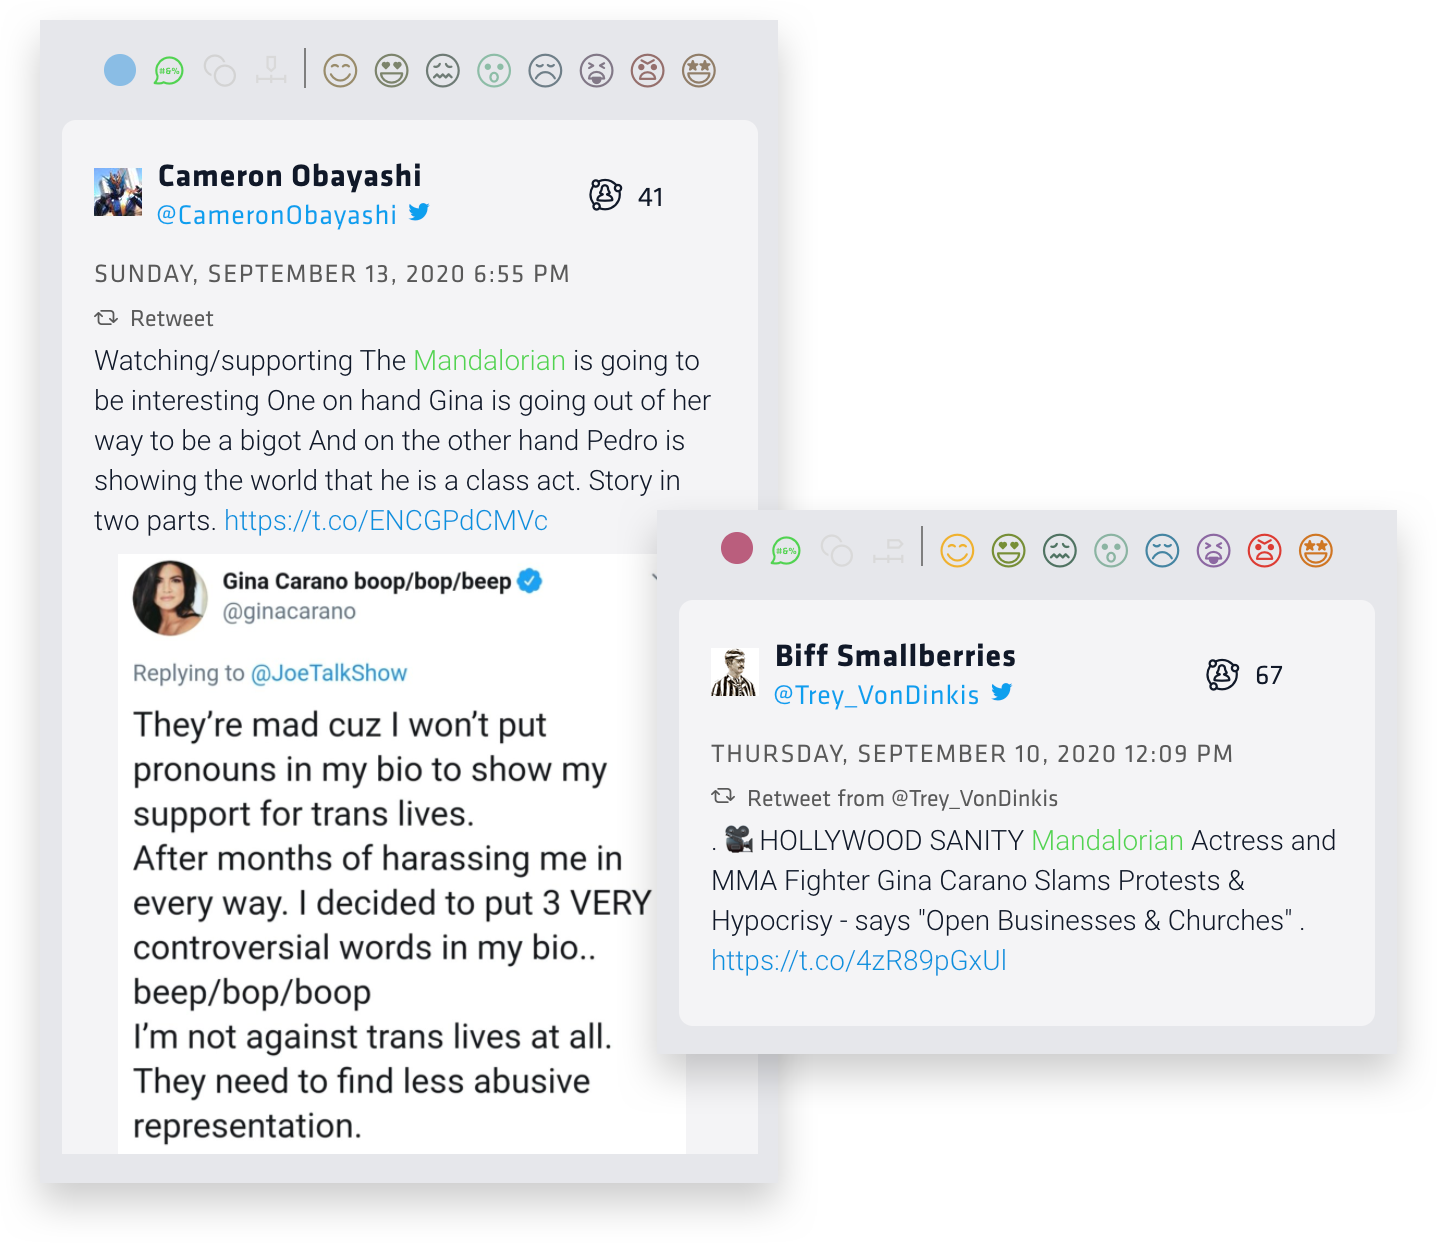 "These tweets, via Nuvi's social listening platform, show people's reactions to Gina Carano's political views. The first reads: ""watching/supporting the Mandalorian is going to be interesting. On one hand Gina s going out of her way to be a bigot and on the other hand Pedro is showing the world that he is a class act. Story in two parts. This author shows the tweet of Carano's he's referring to: ""They're mad cuz I won't put pronouns in my bio to show my support for trans lives. After months of harassing me in every way, I decided to put 3 VERY controversial words in my bio... beep/bop/boop. I'm not against trans lives at all. They just need to find less abusive representation."" The second tweet states the Carano is of the opinion that businesses and churches should reopen during the 2020 pandemic"